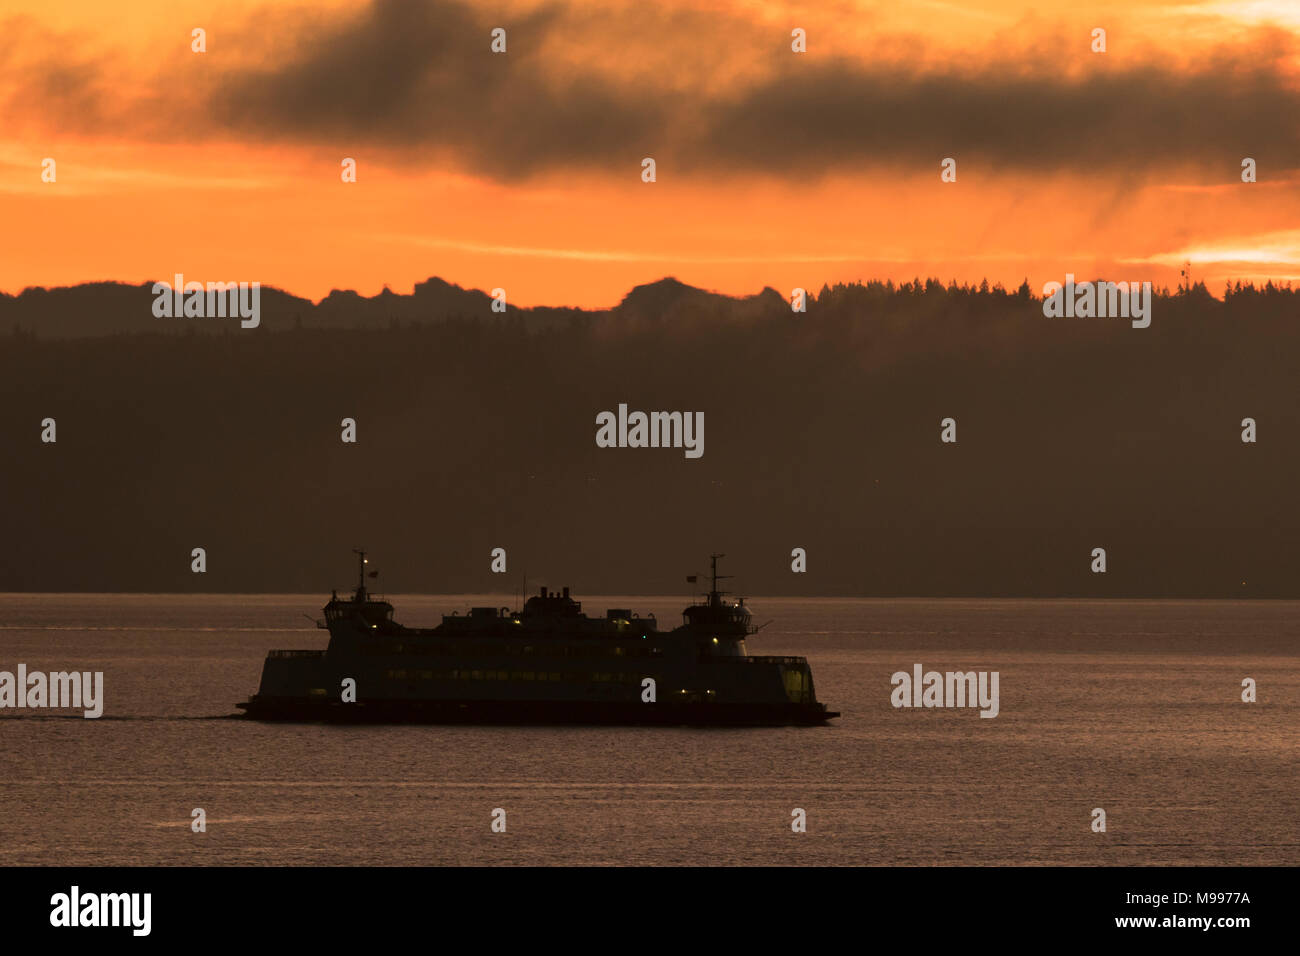 Puget Sound ferry and sunrise with Cascade mountains in background. Washington State ferries. Port Townsend ferry. - Stock Image